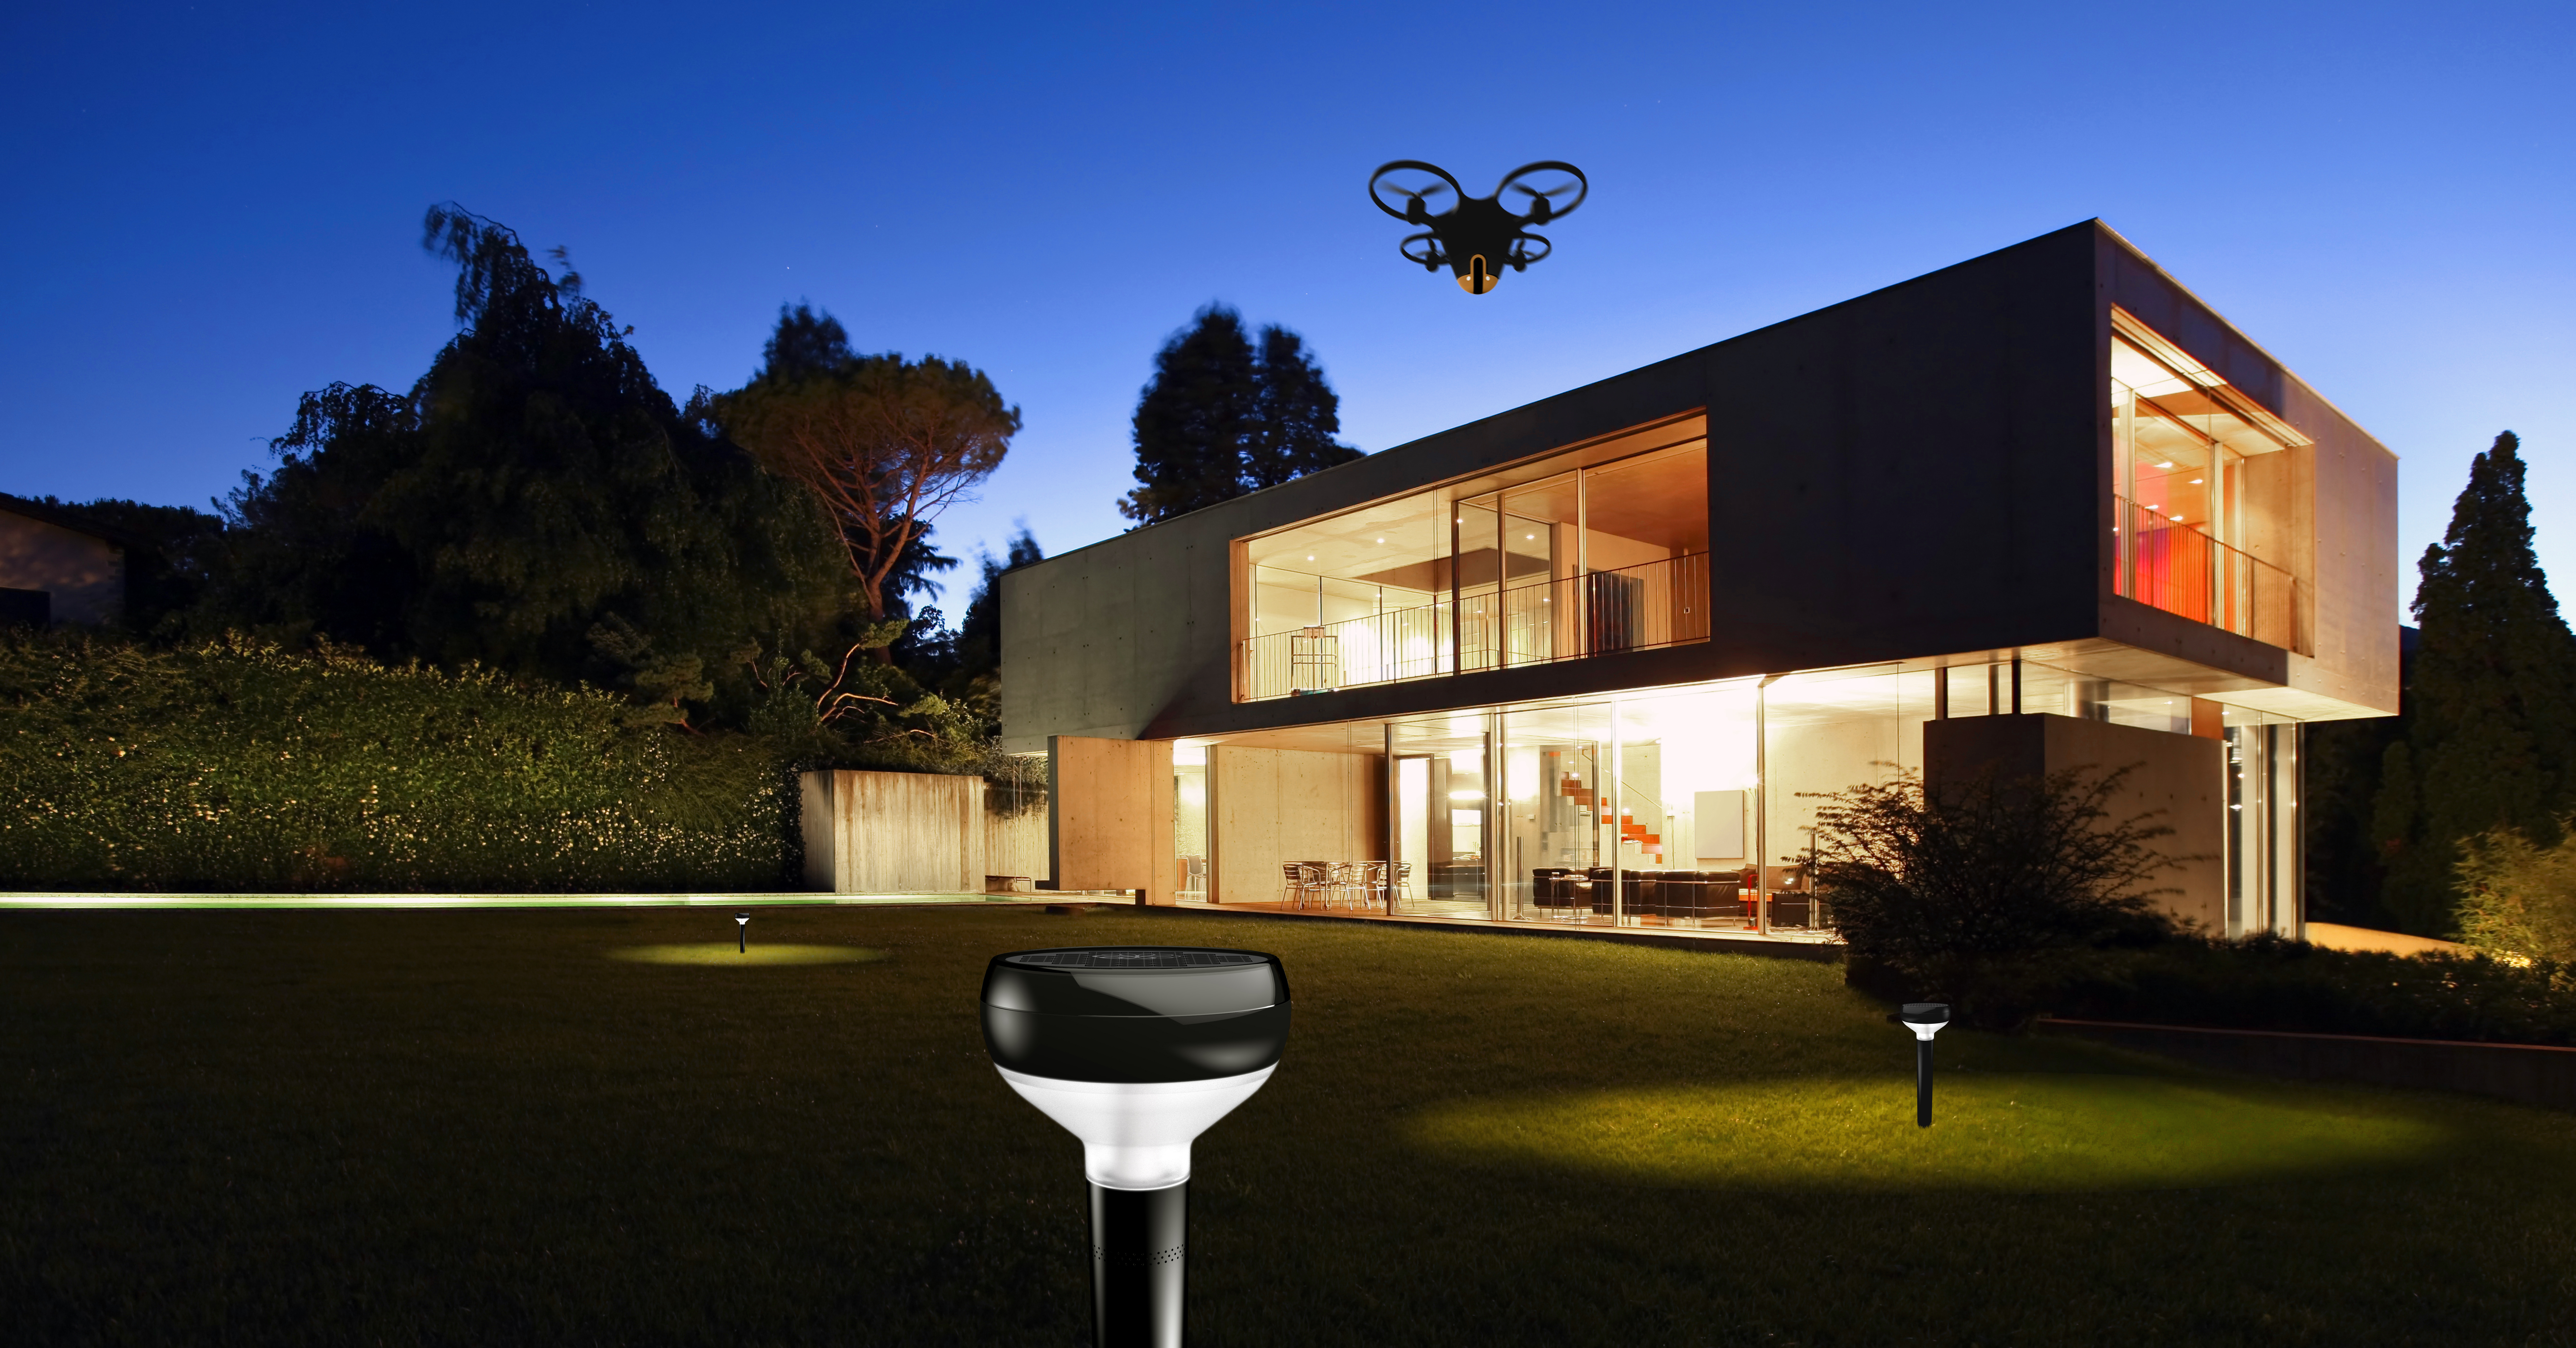 Discover the Latest & Safest Surveillance Systems in UAE!